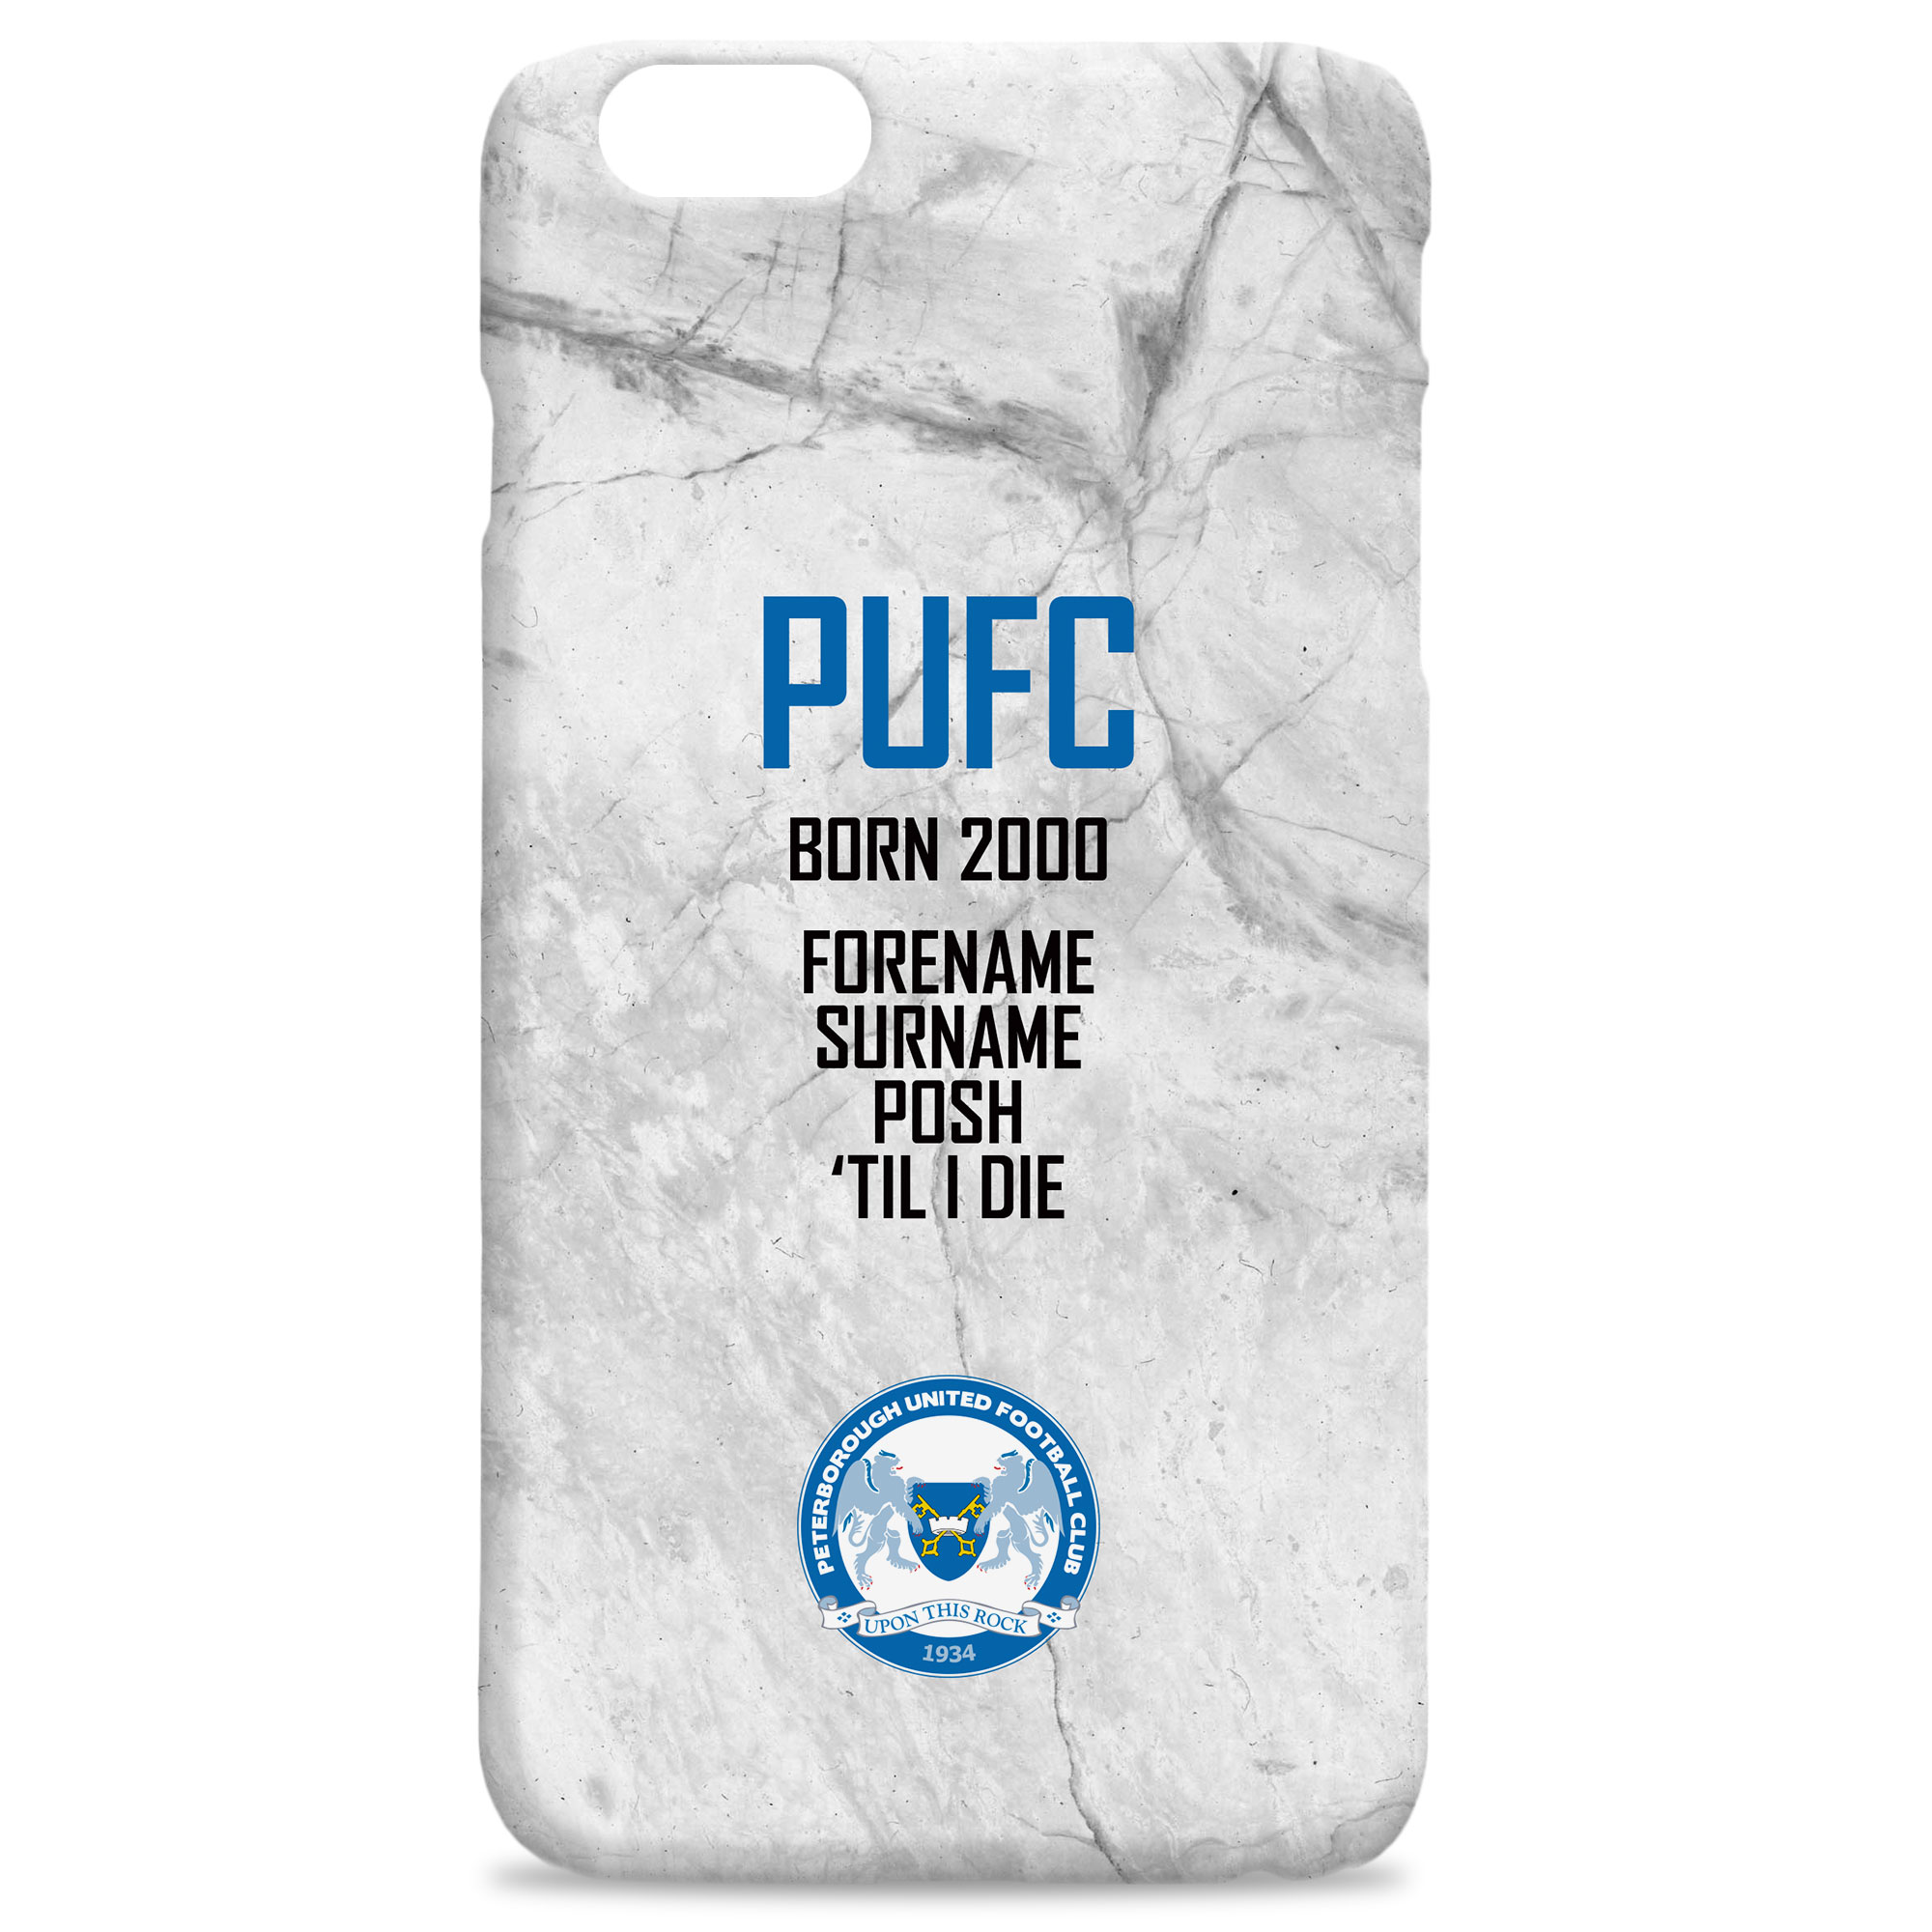 Peterborough United FC 'Til I Die Hard Back Phone Case